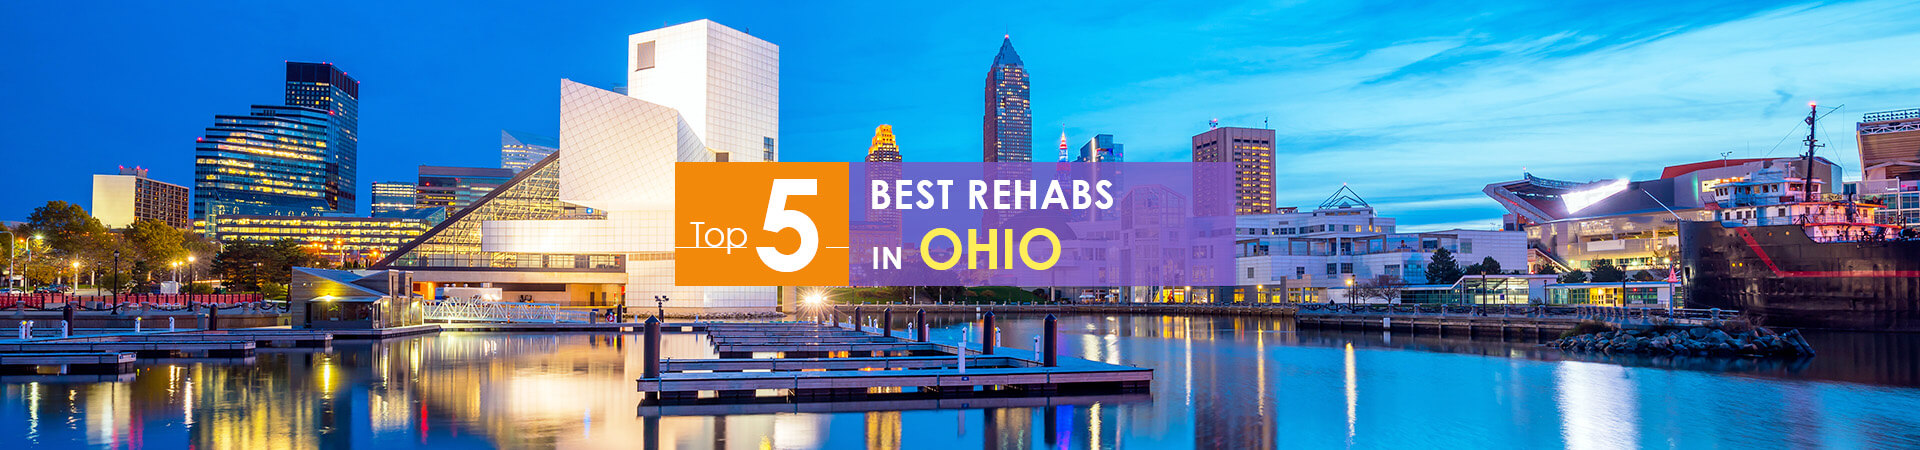 Ohio night view and Top 5 rehabs caption